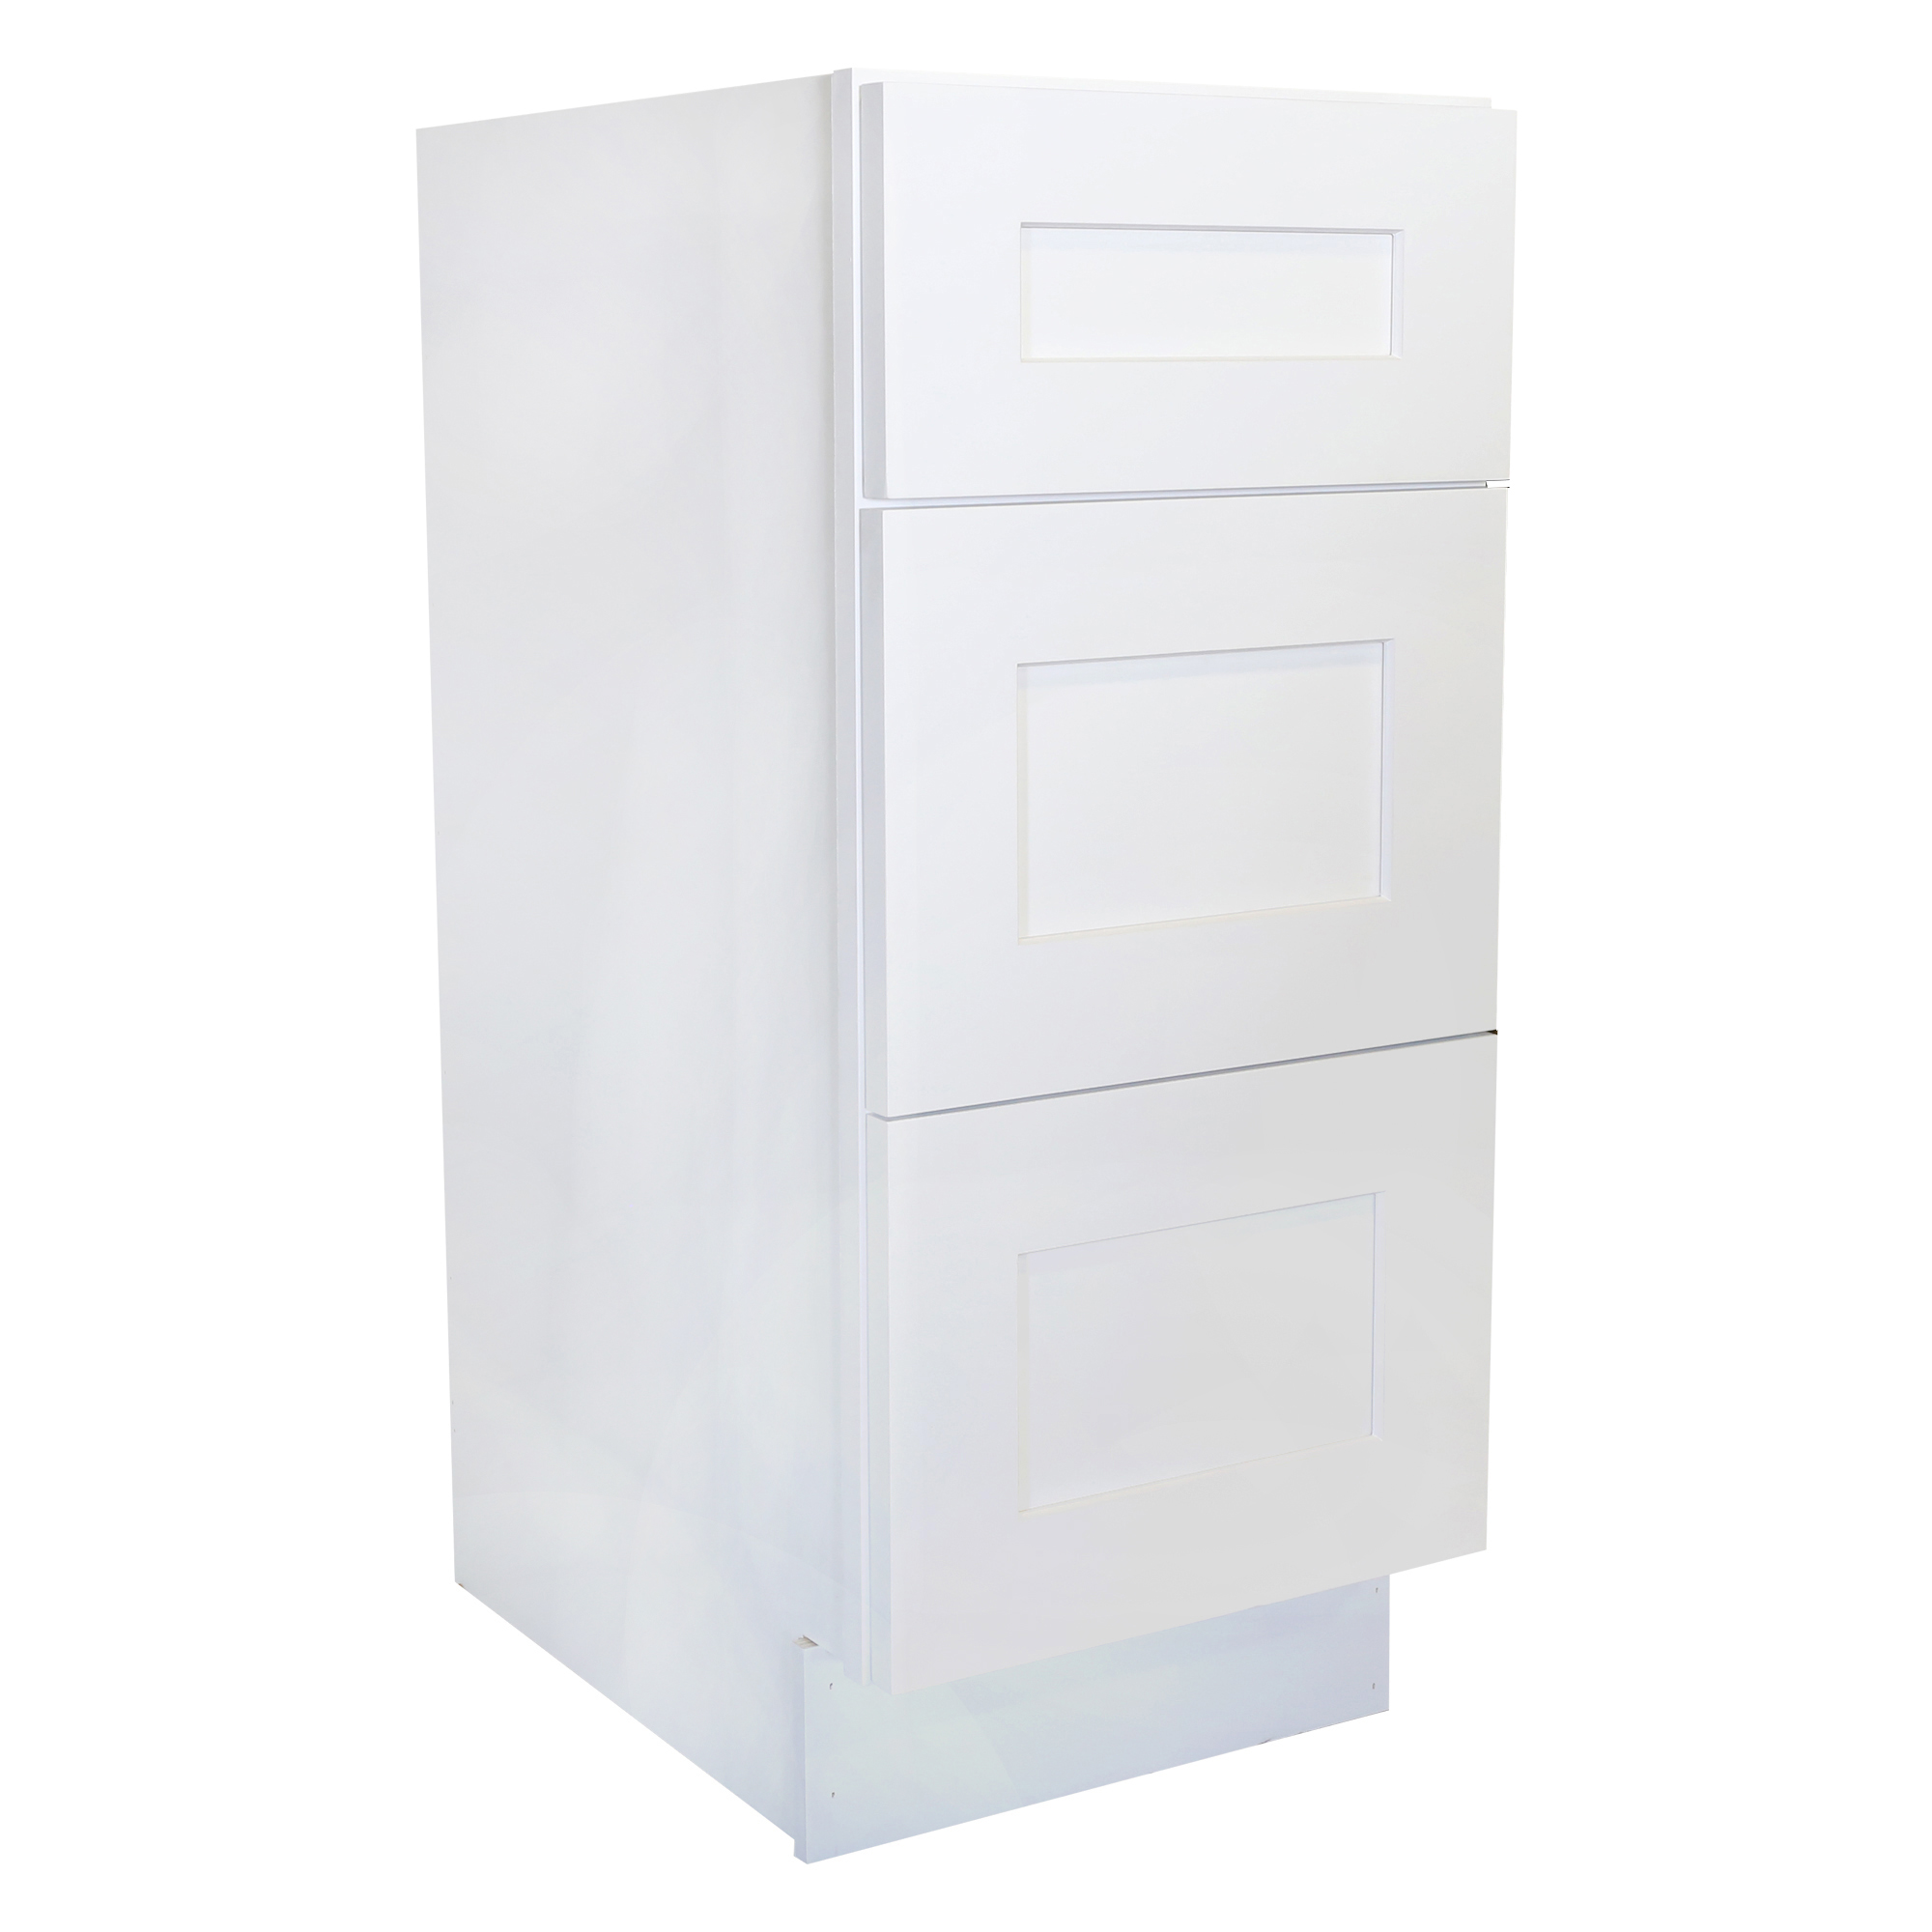 Ready to Assemble 18Wx34.5Hx24D in. Shaker Base Drawer with 1 Standard Drawer with 2 Deep Drawers in White